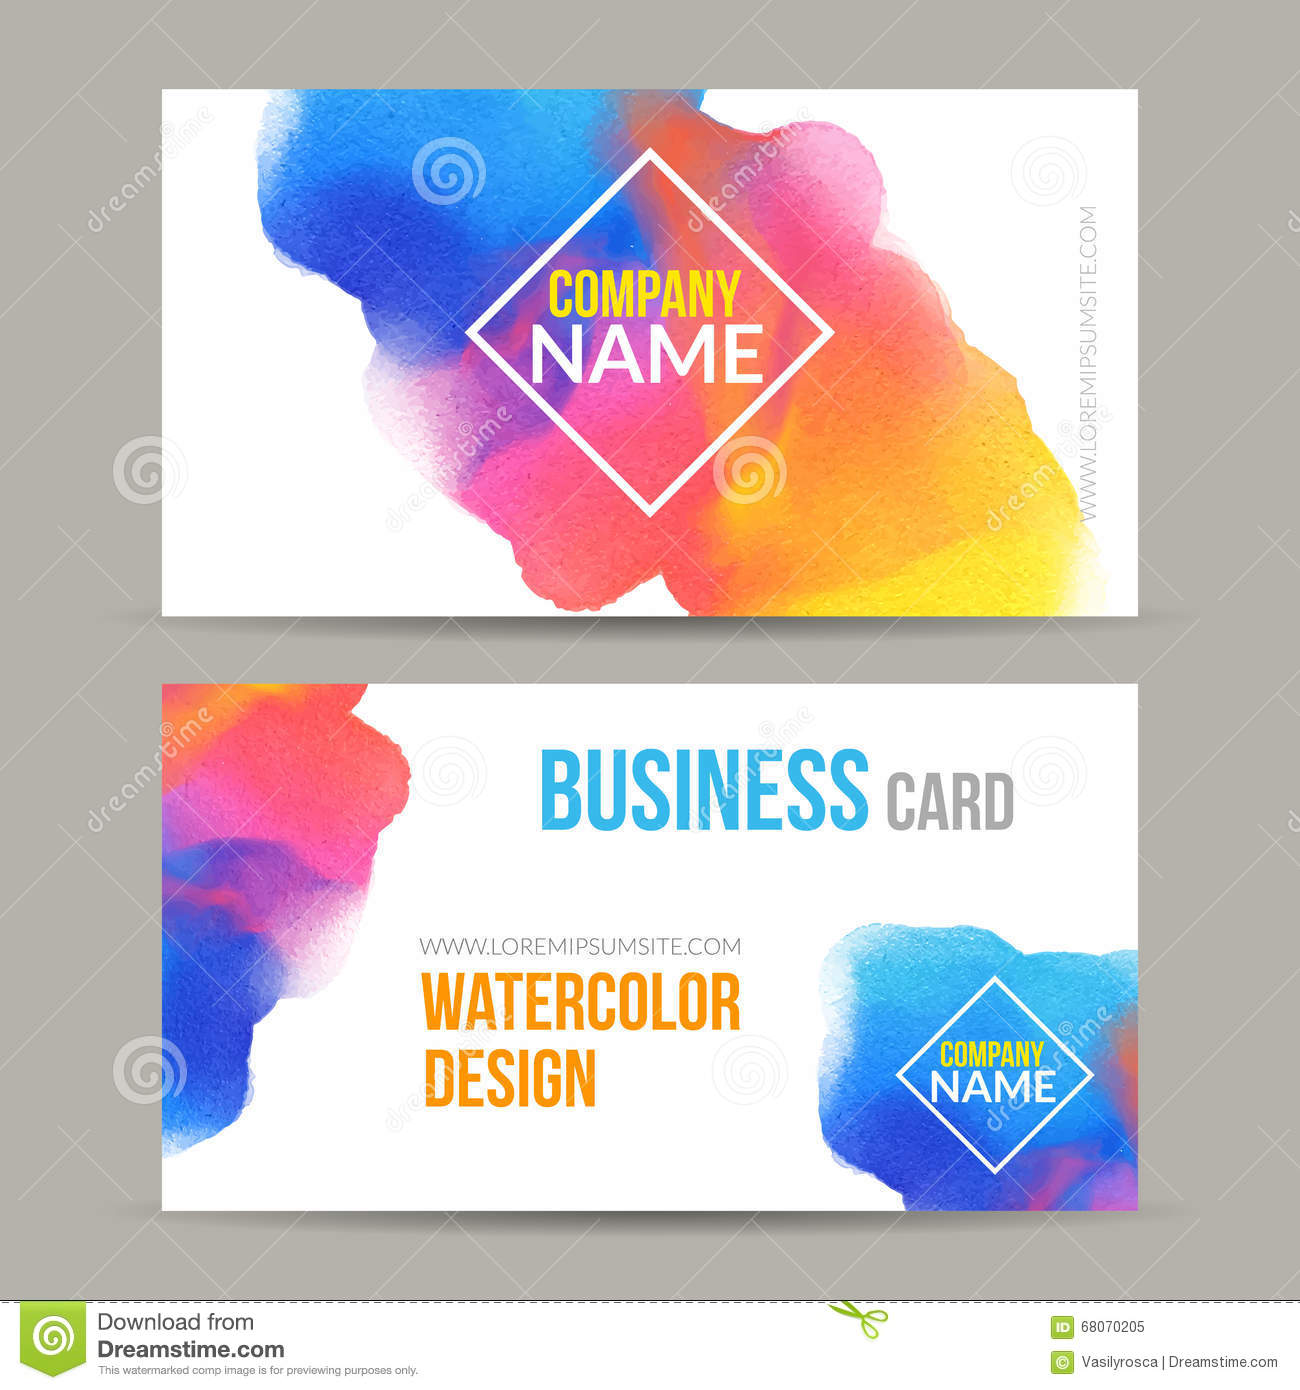 Vector business cards template with watercolor paint abstract download vector business cards template with watercolor paint abstract background business card mockup stock vector reheart Gallery